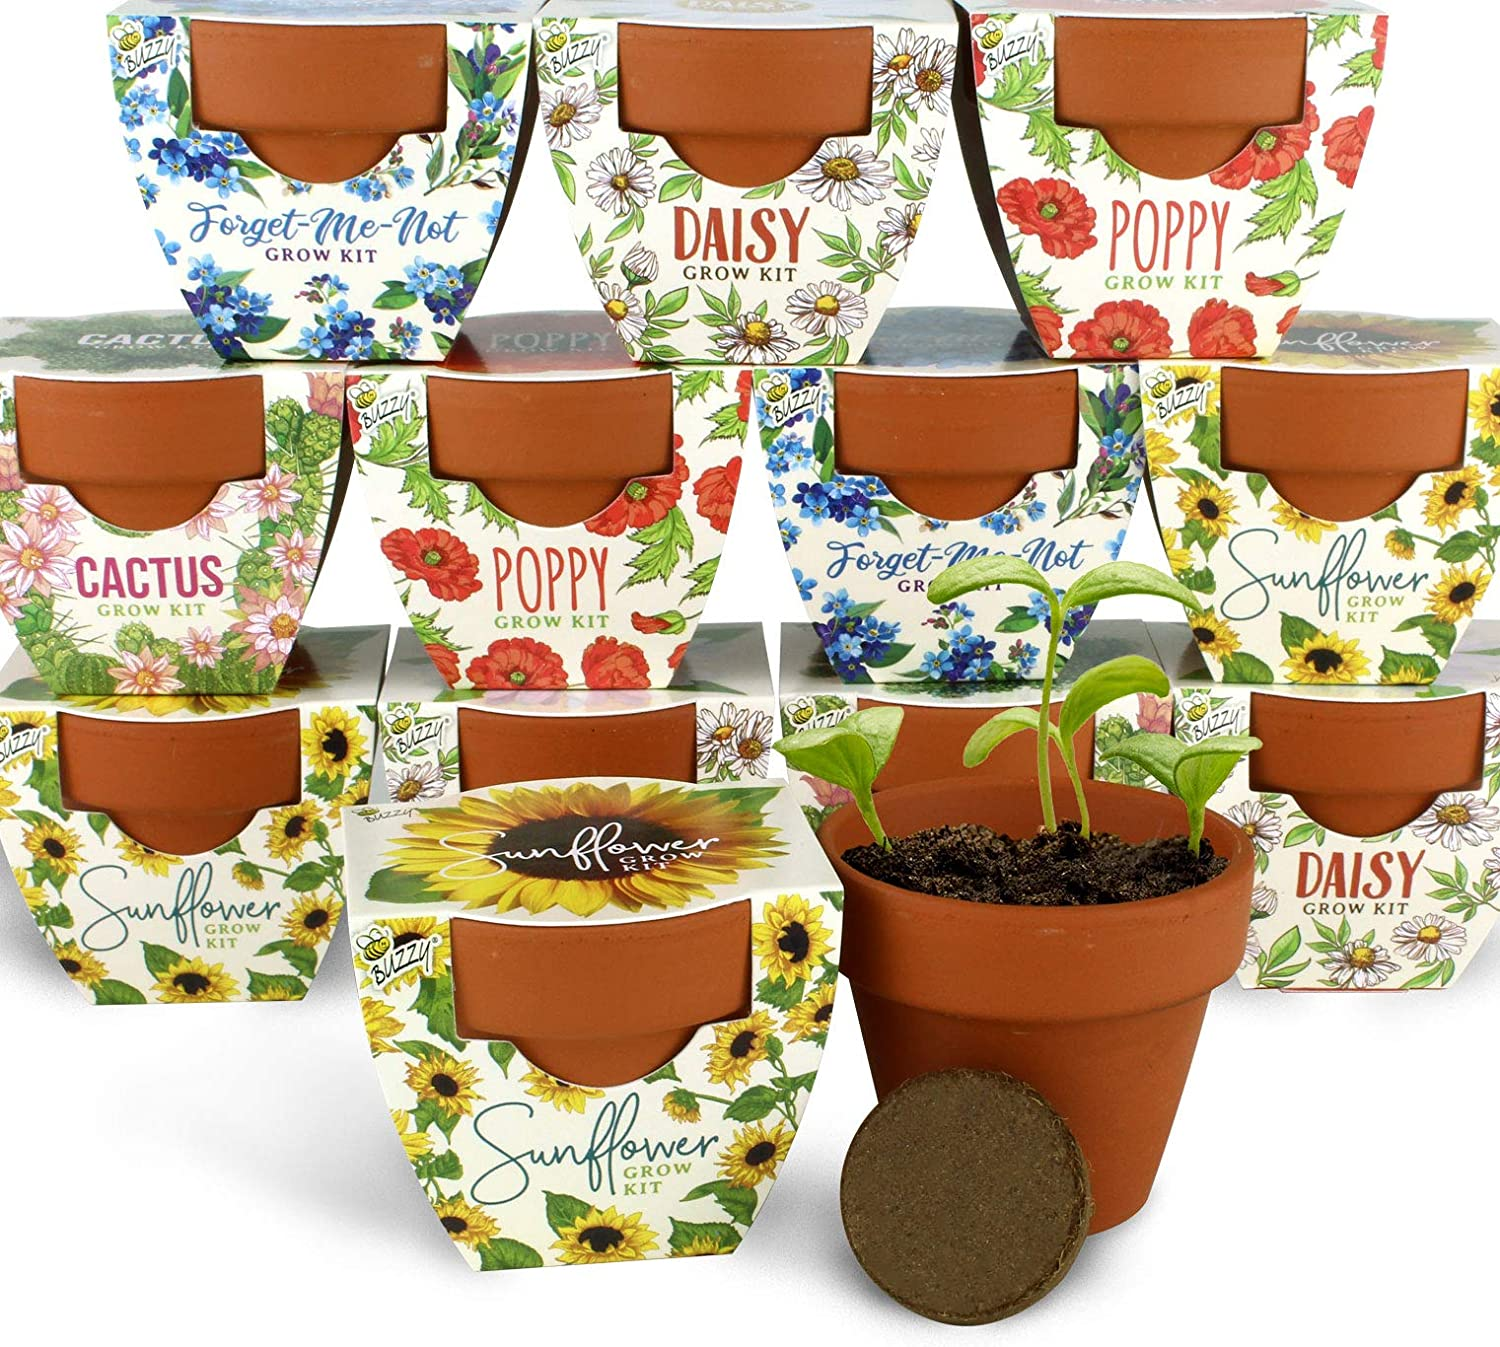 Buzzy Seeds Terracotta Mini Assorted 12-Pack | Best Gardening Gifts and Favors for Weddings, Parties, Events! Modern, Trendy, Unique, and Fun | Growth Guaranteed, Promise! | Buzzy Daydream Series